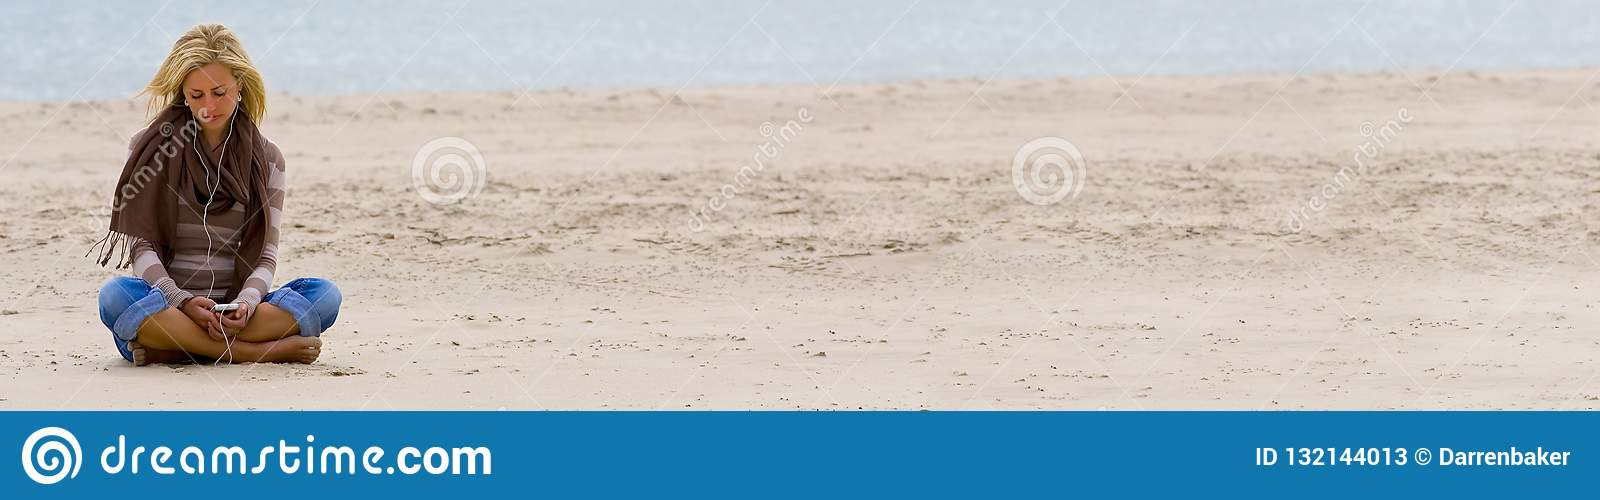 Woman Girl on Beach Listening to Music on Smart Phone